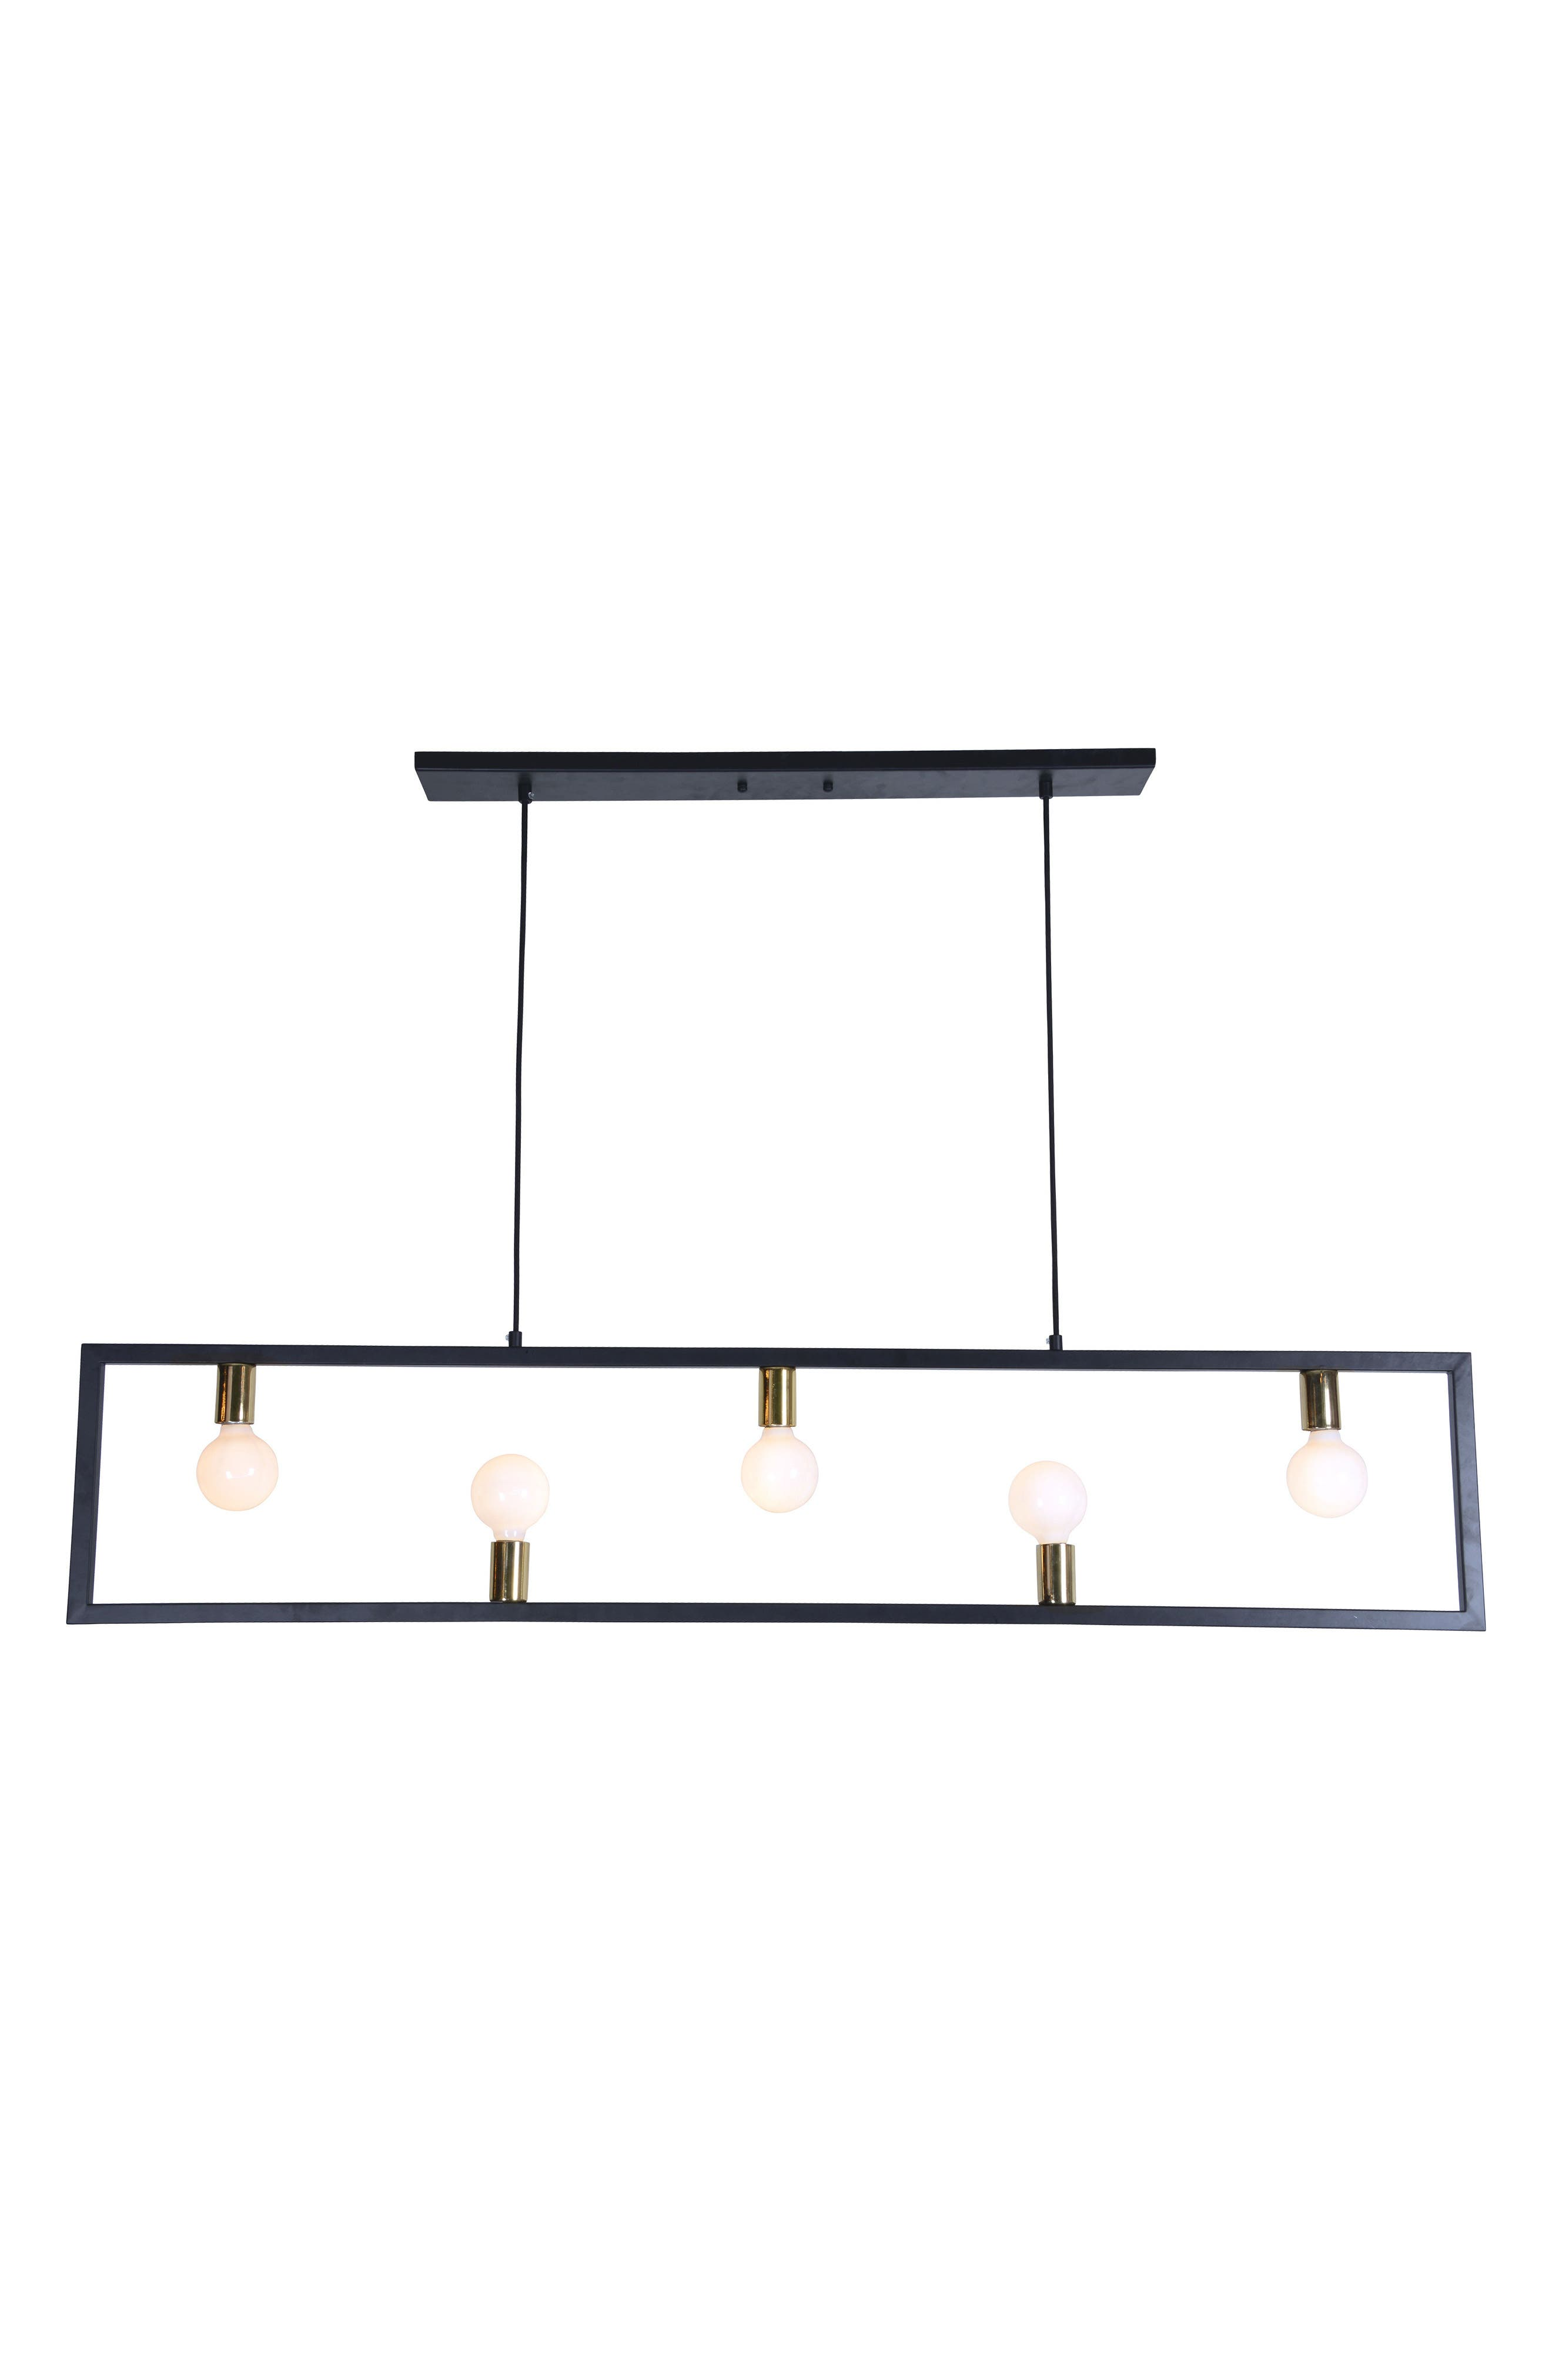 Alternate Image 1 Selected - Renwil Vera Ceiling Light Fixture